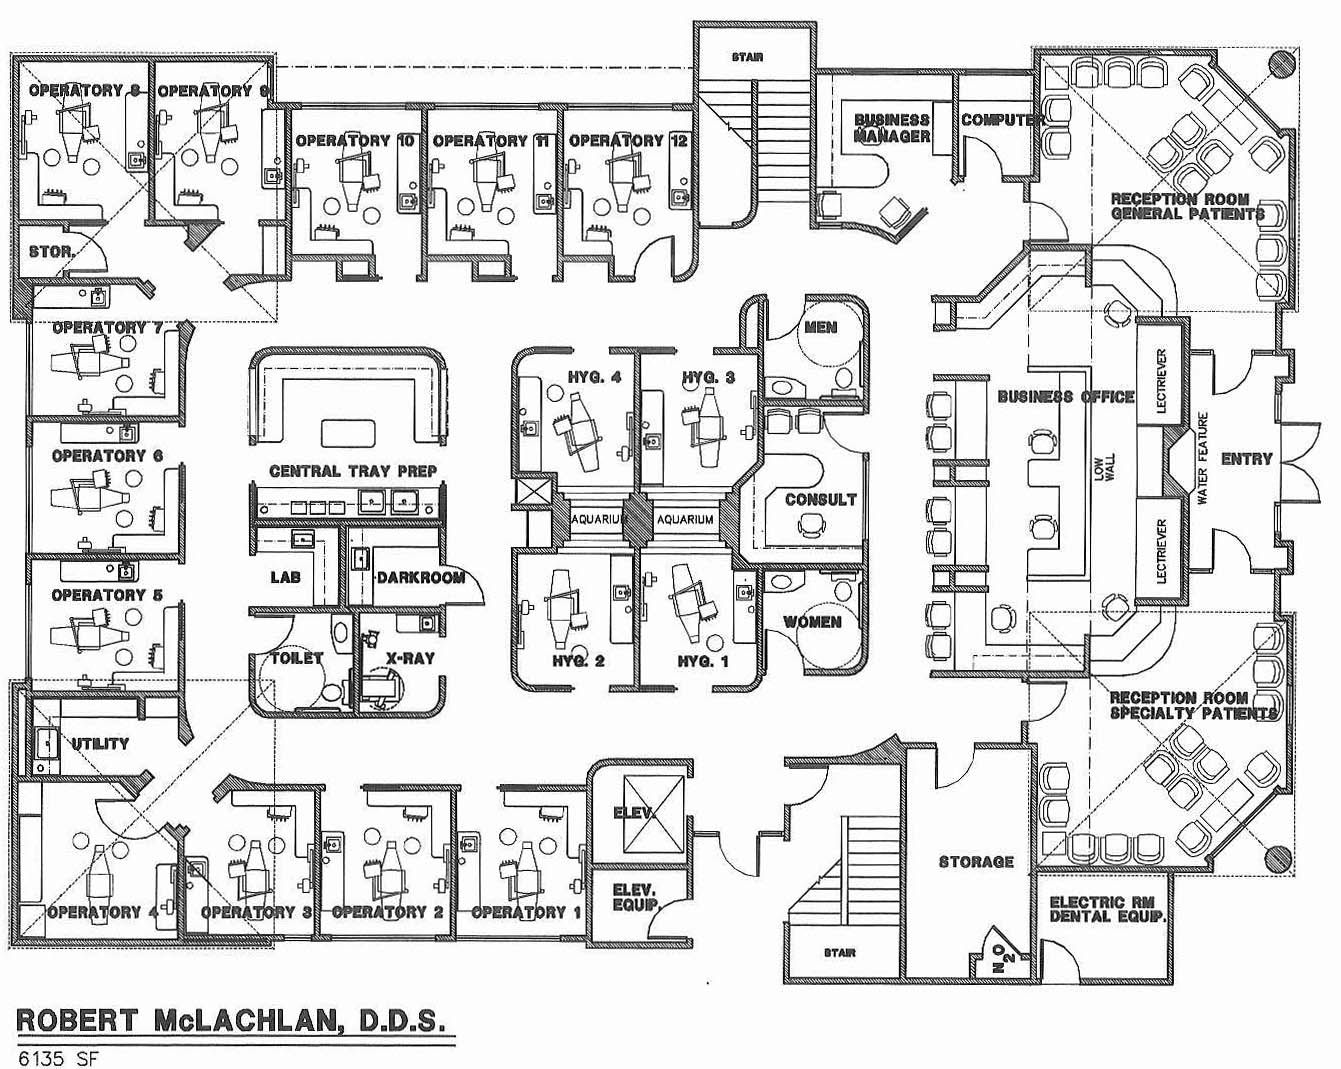 Medical office floor plans 1341 1069 park vista Office building floor plan layout